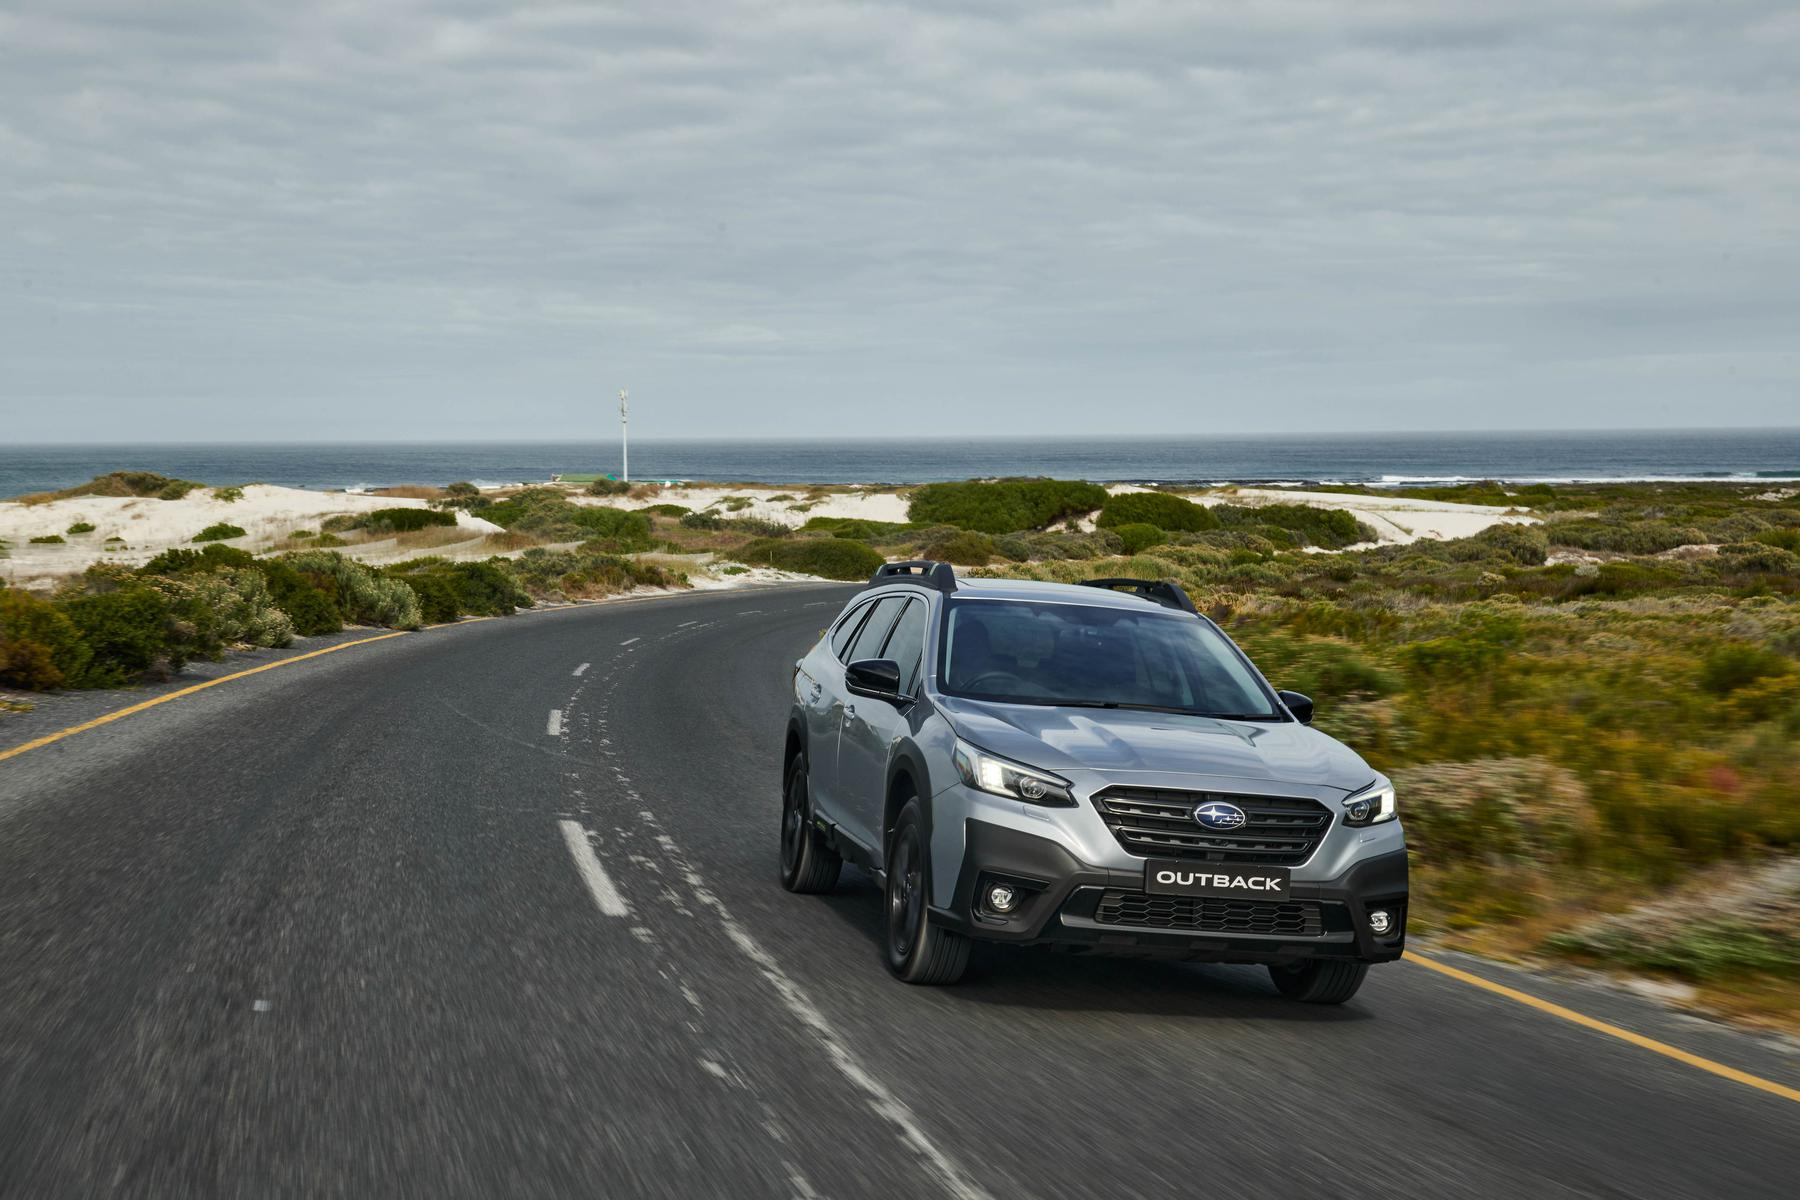 All-new Subaru Outback makes its debut